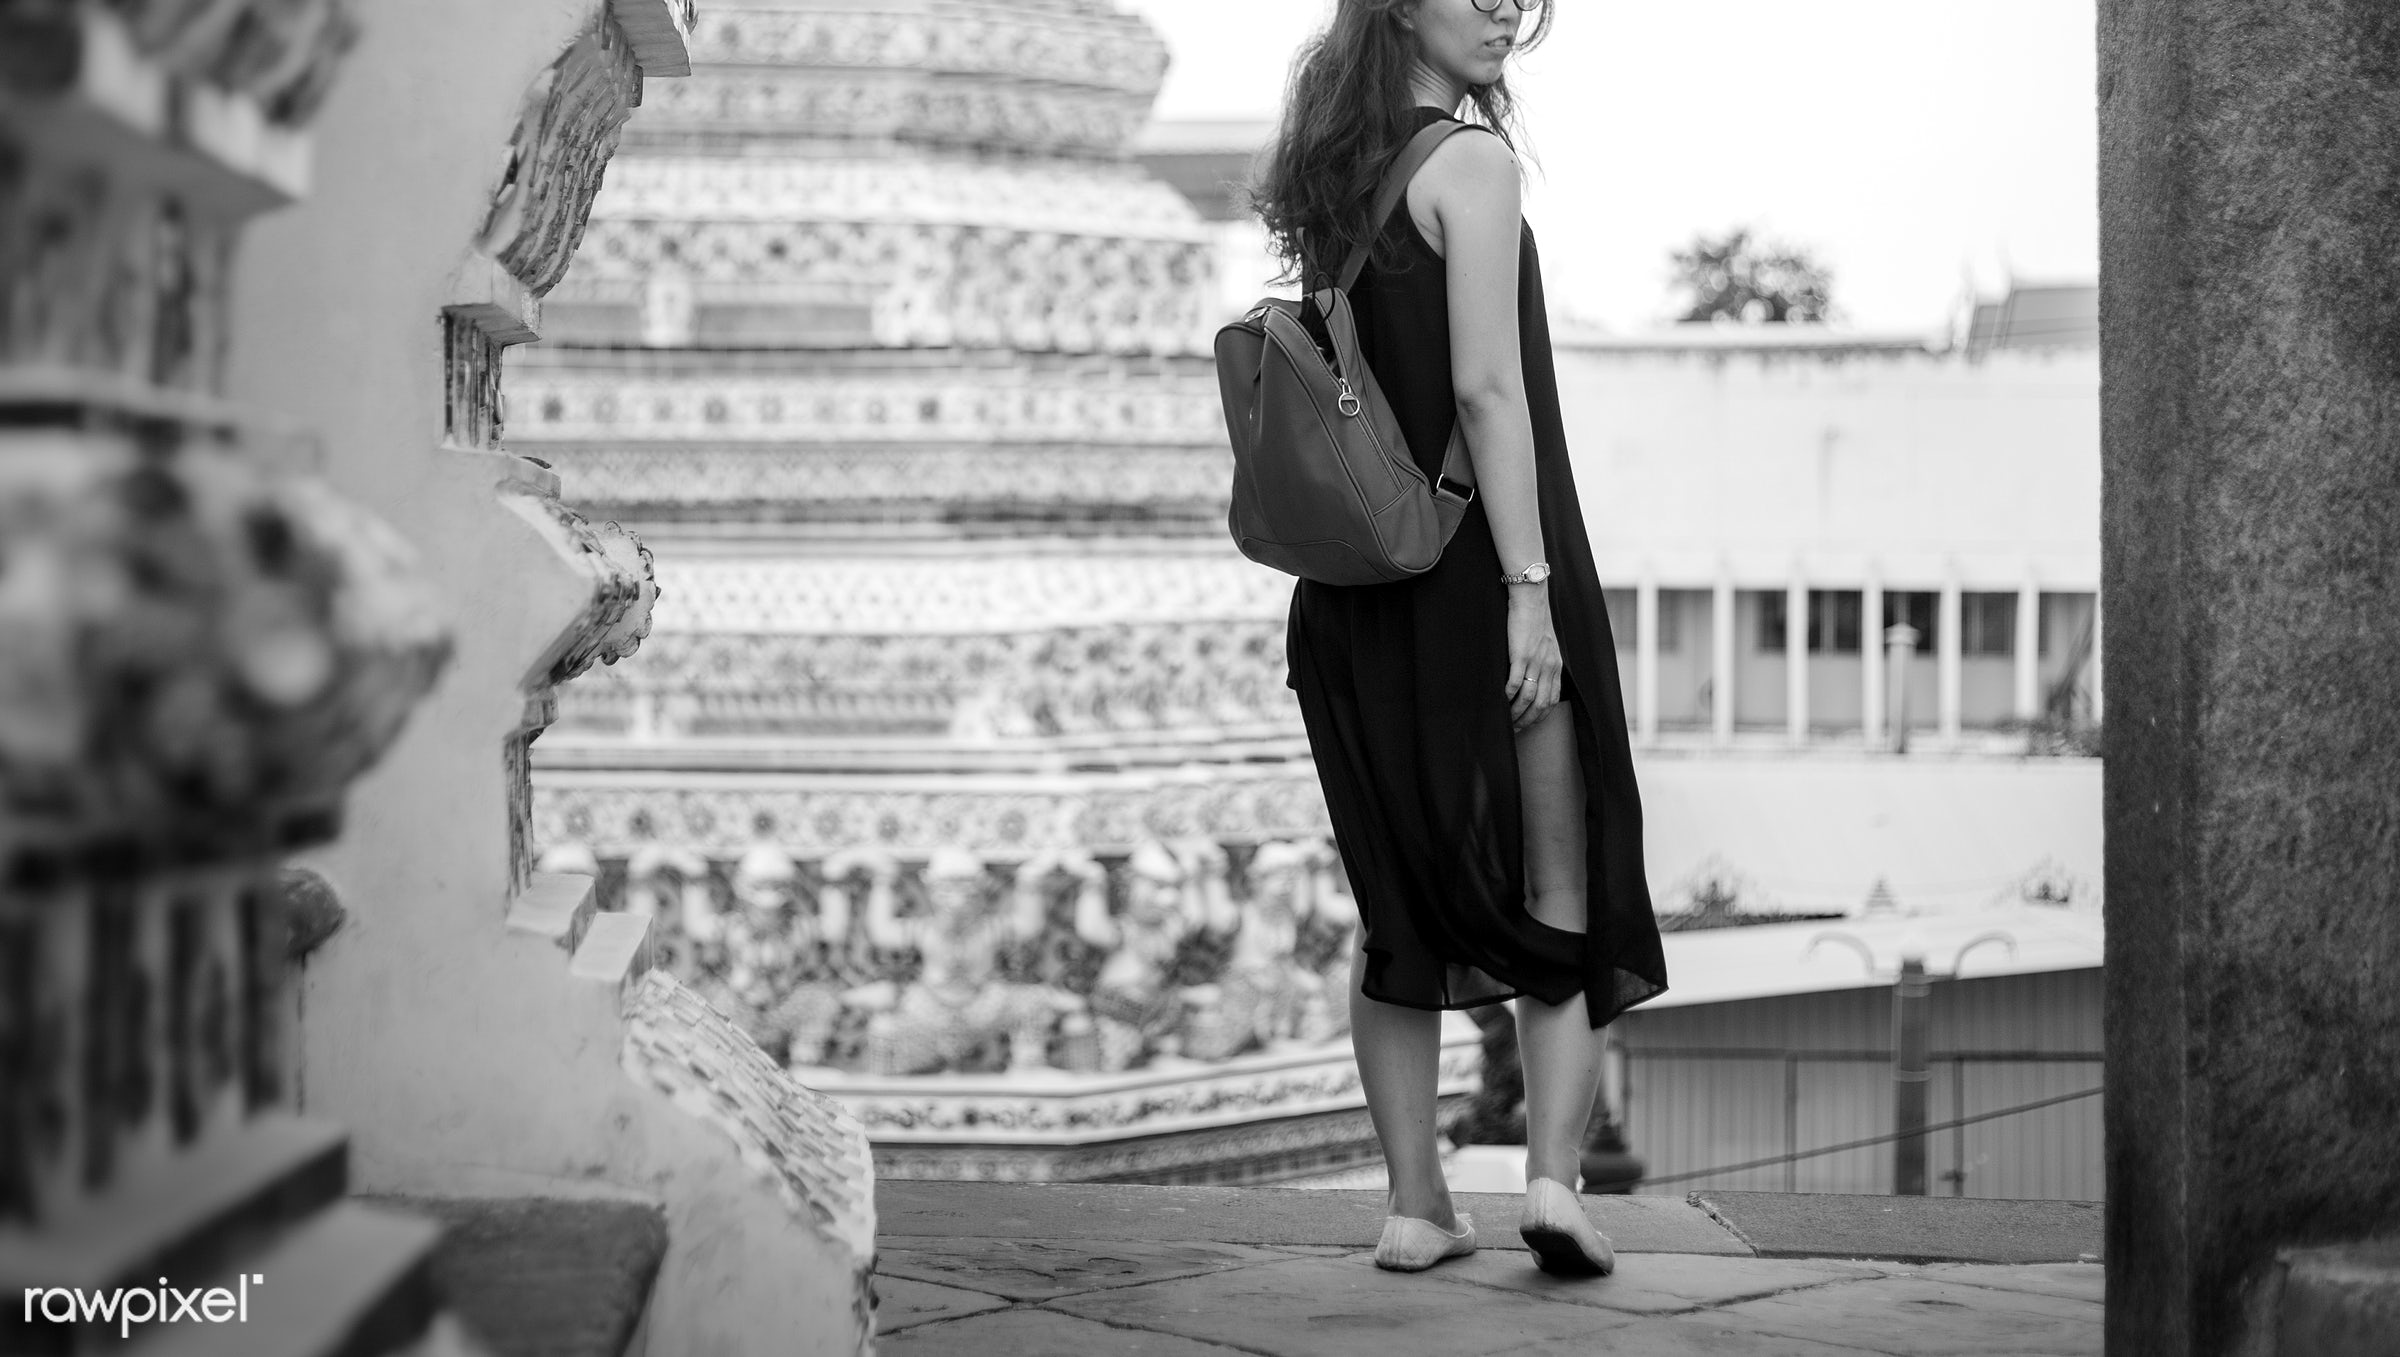 alone, asian, back, bag, black, buddhism, explore, female, one, outdoors, people, person, religion, side, solo, temple, thai...